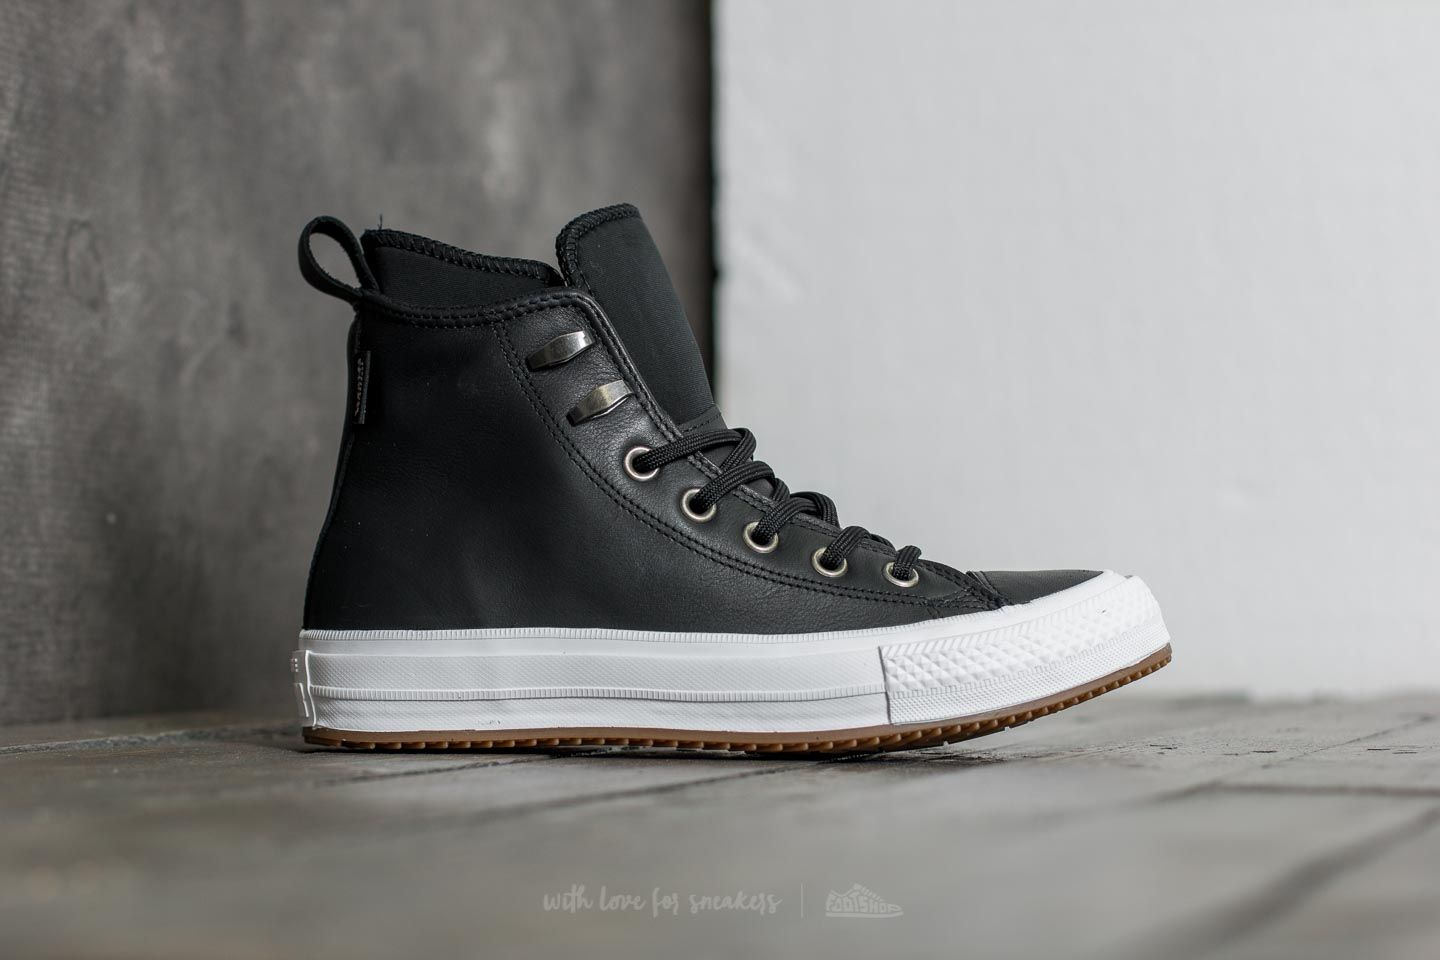 d91e3dea738c Converse Chuck Taylor All Star Waterproof Boot Hi Black  Black  White at a  great